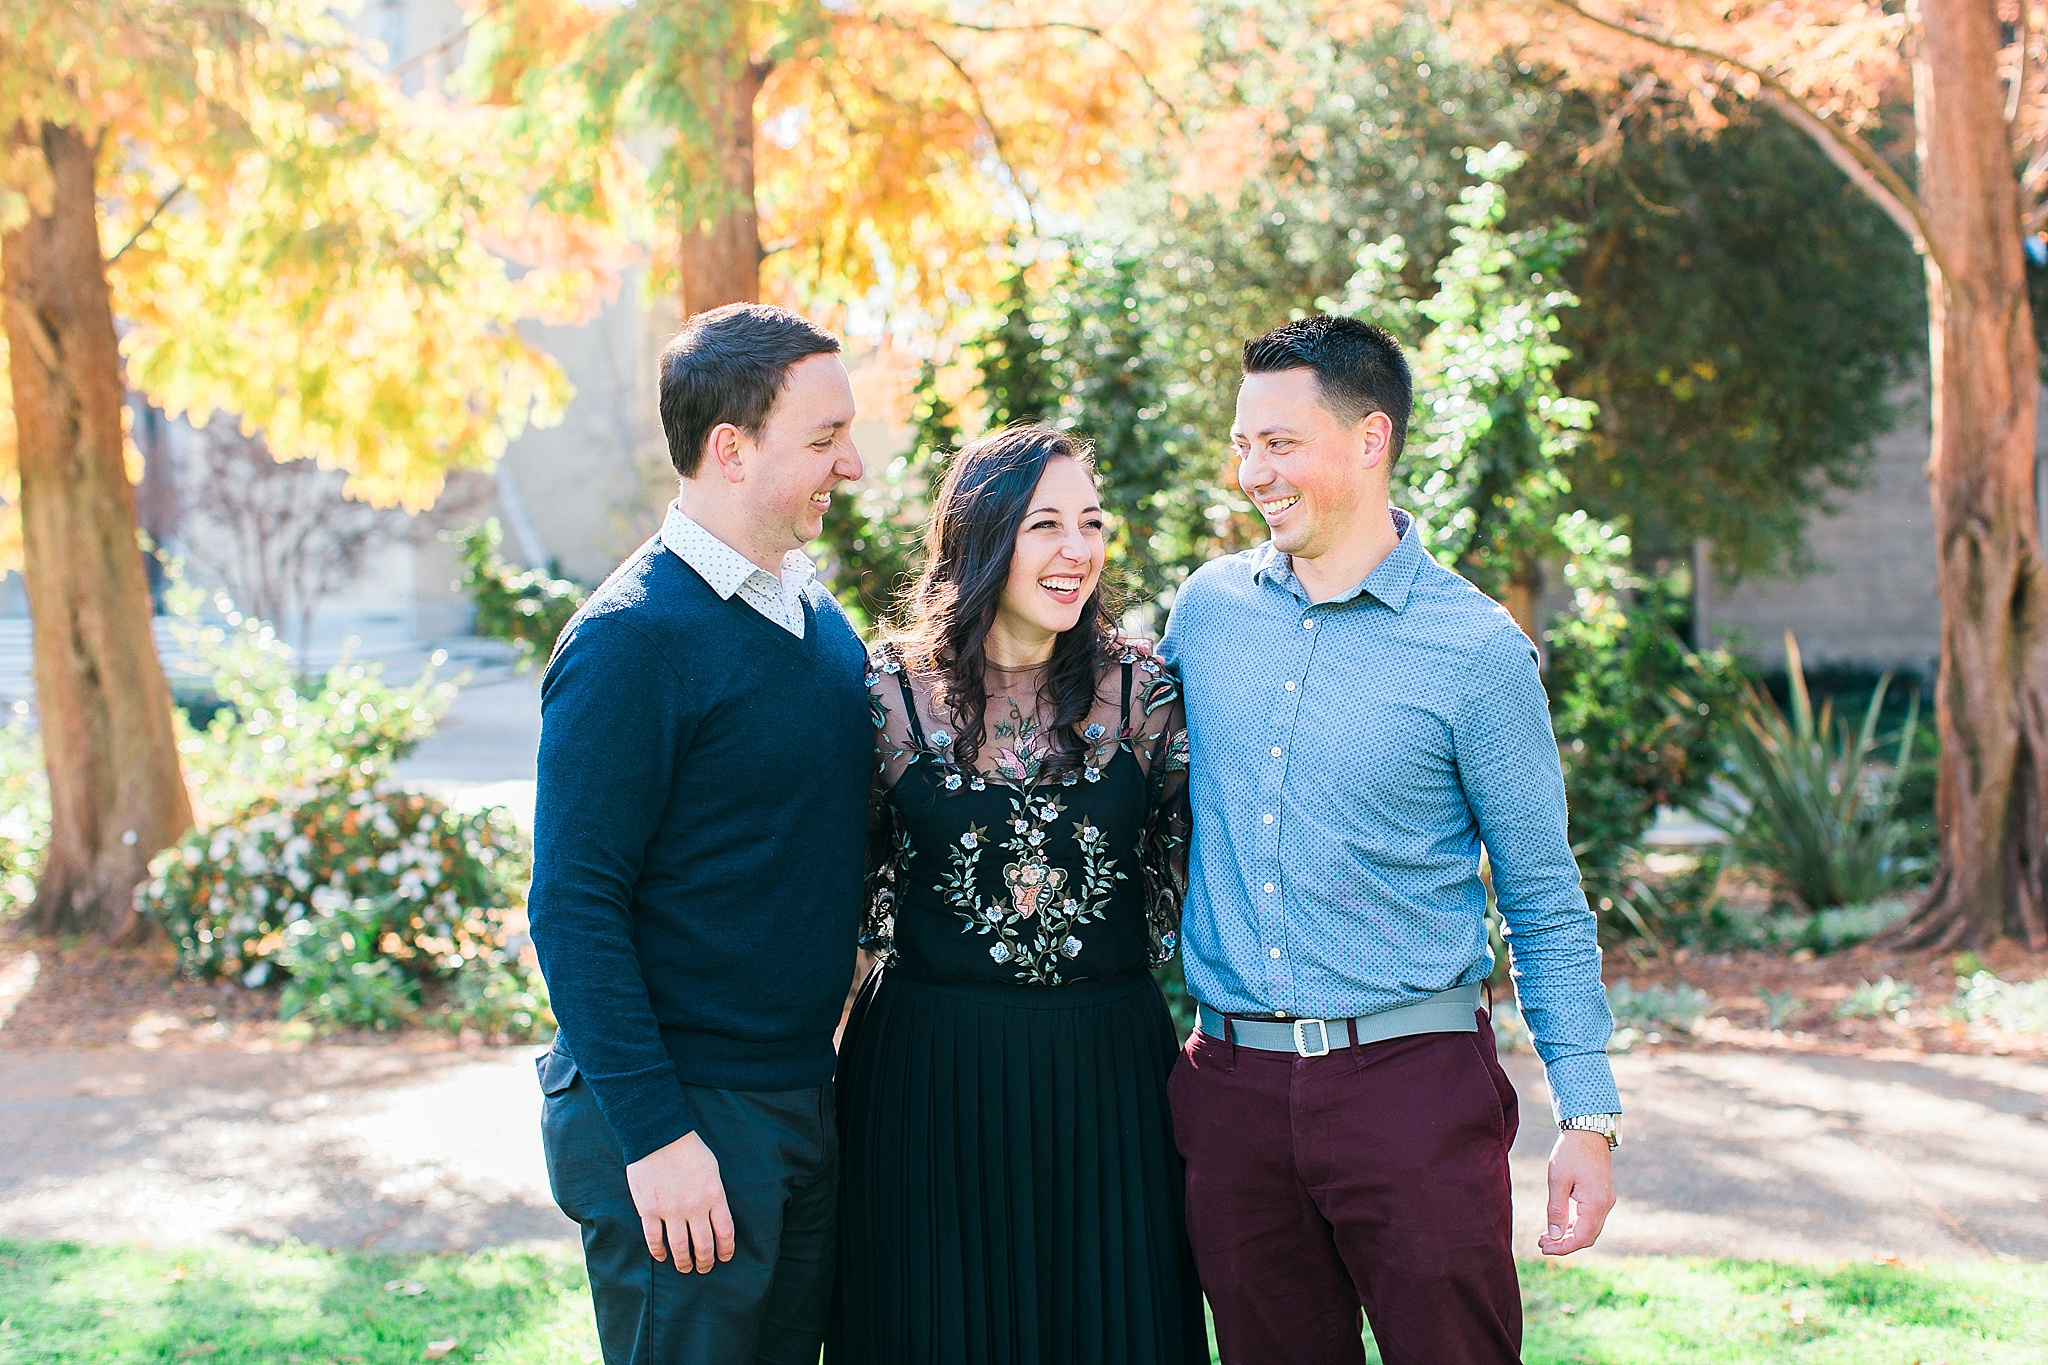 Claremont-Colleges-Family-Photos-24_WEB.jpg